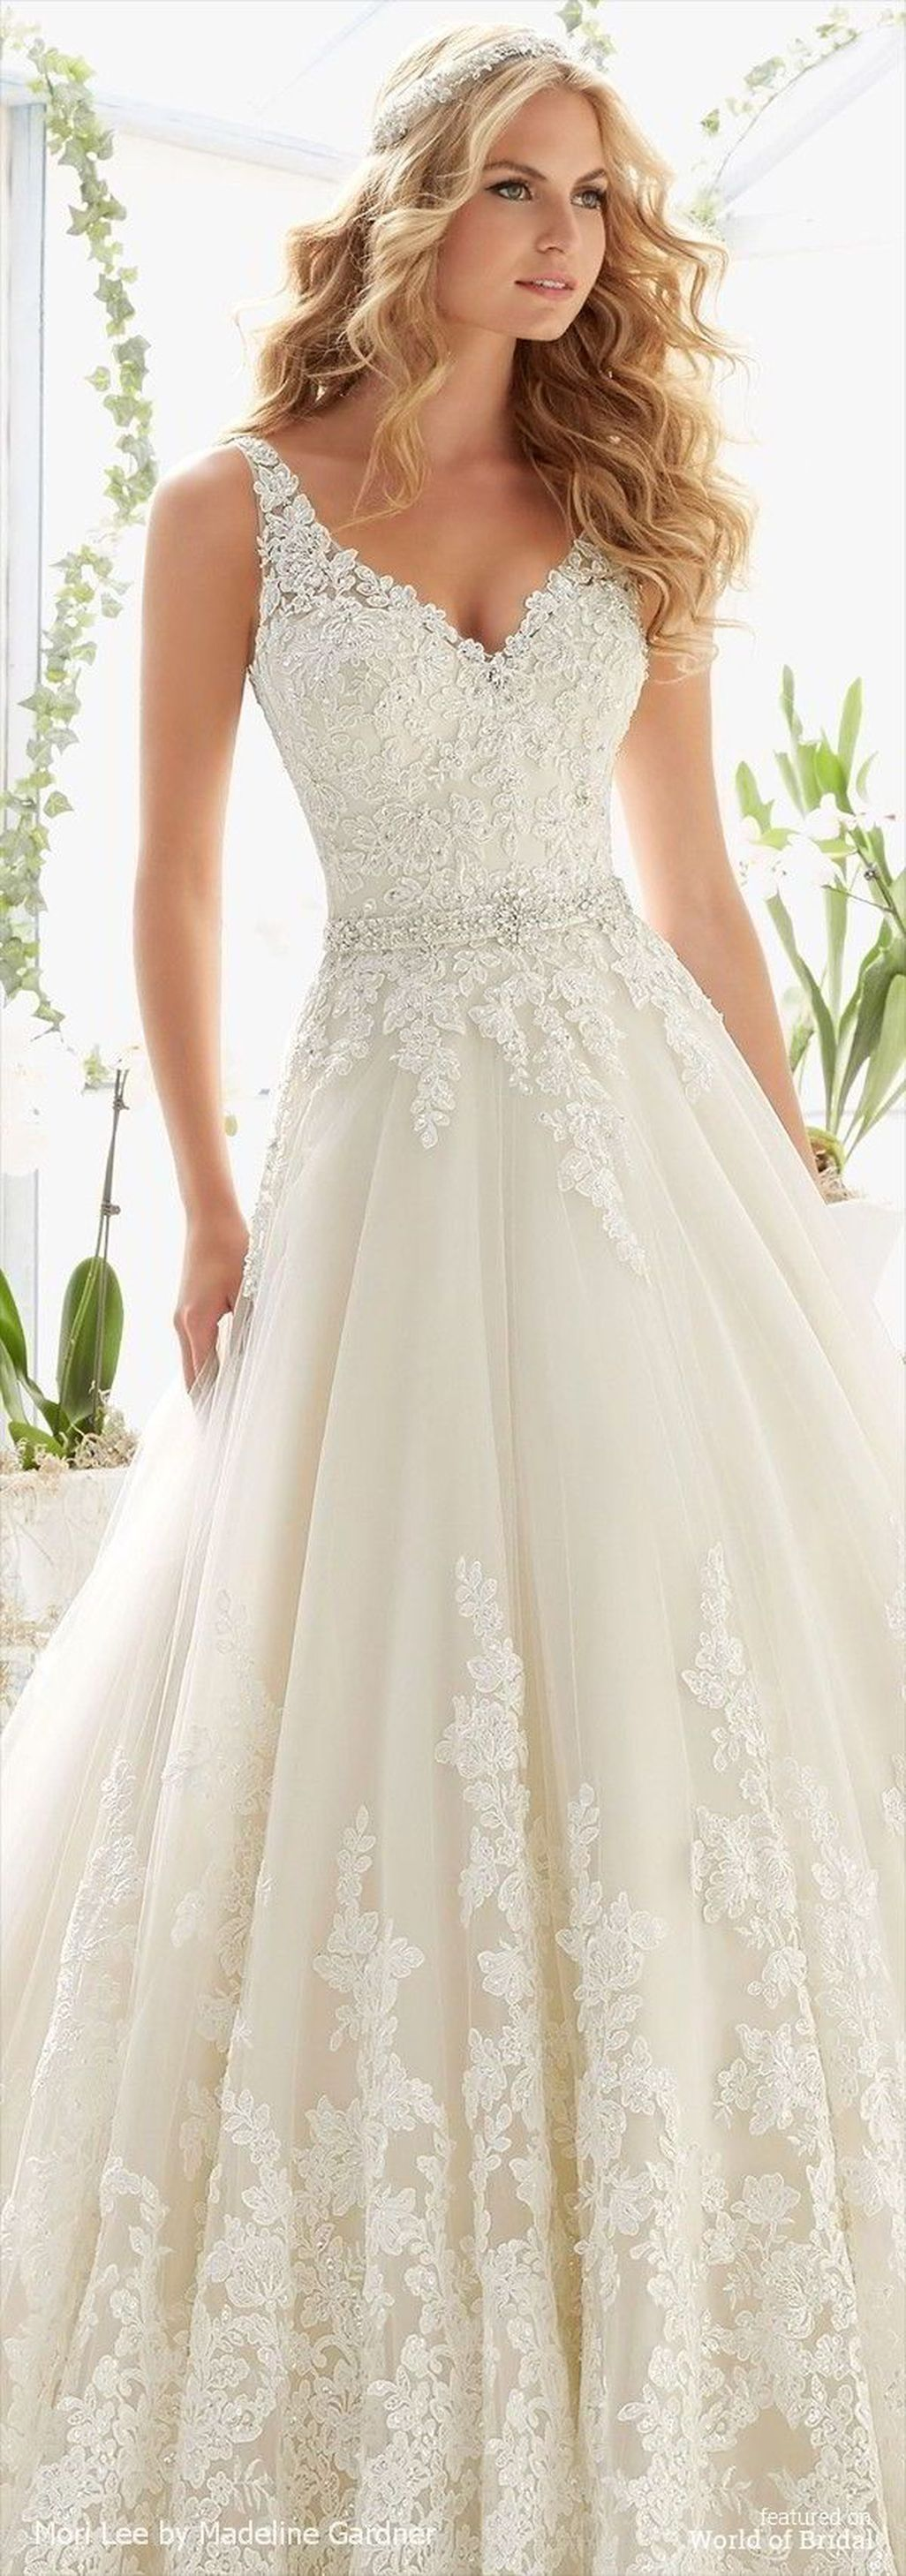 Nice simple spring wedding dress trends ideas more at